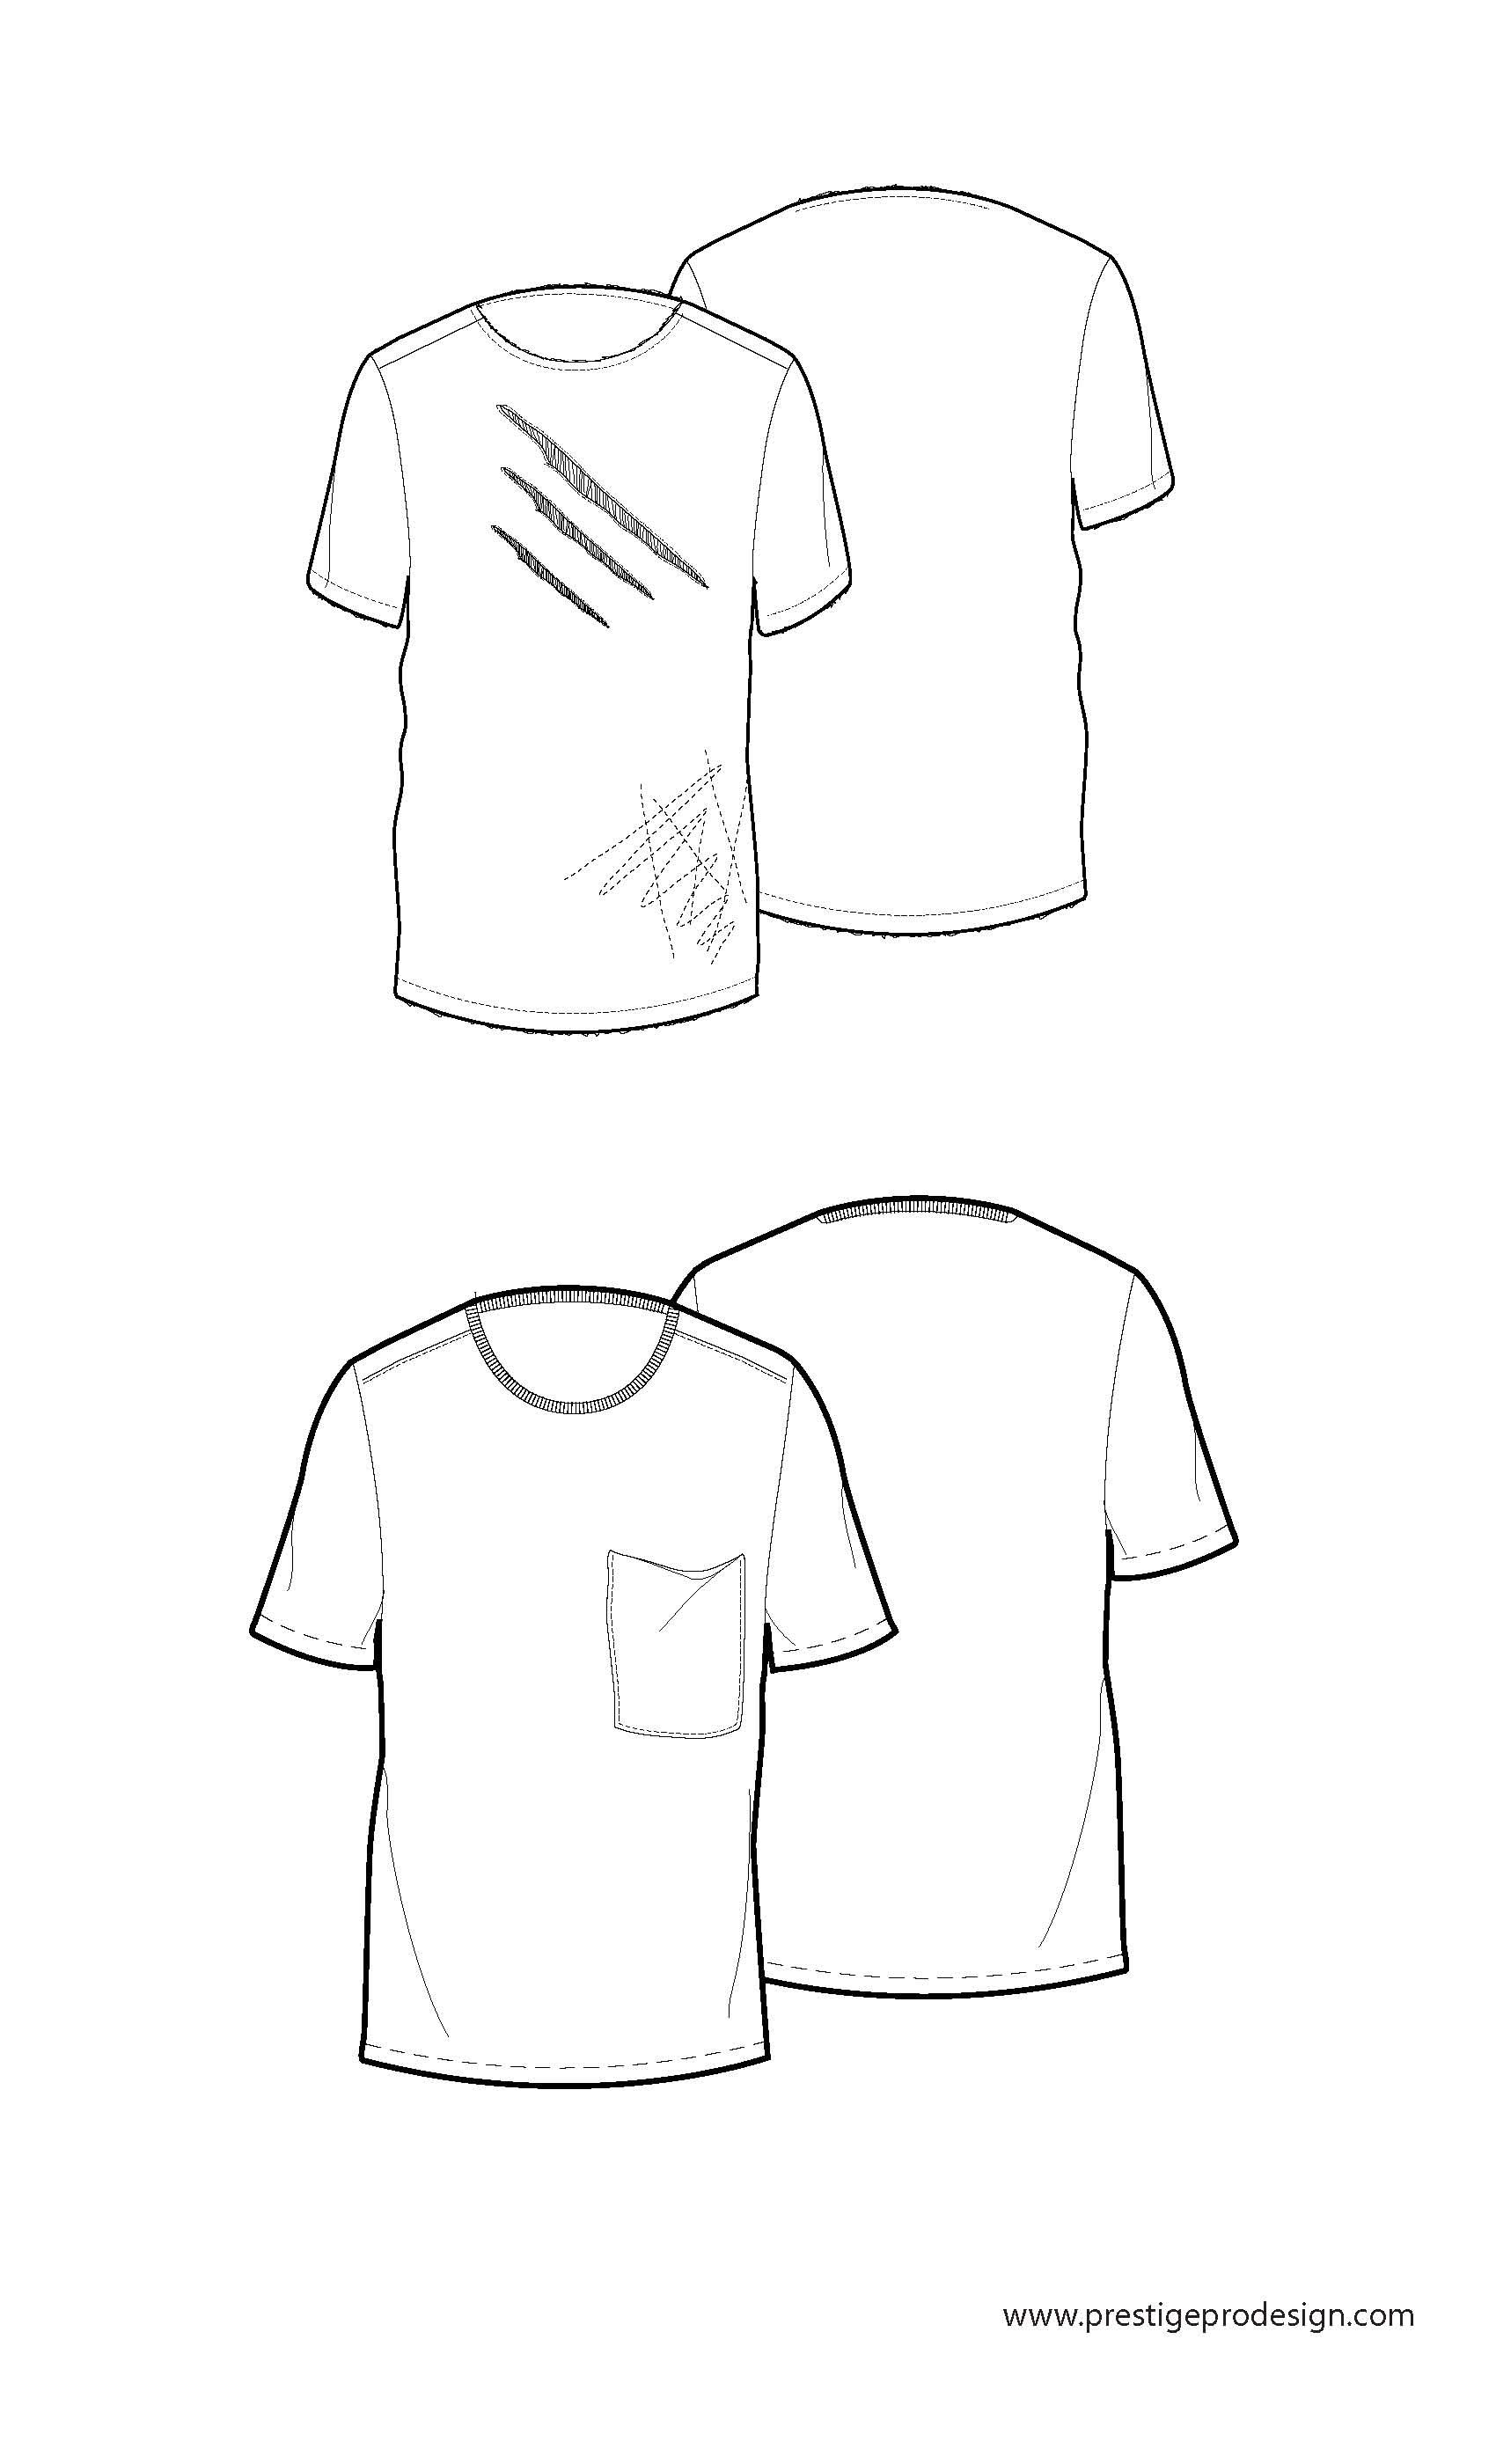 Crew Neck Fashion Design Template Flat Sketches Drawing Clothes Technical Pattern